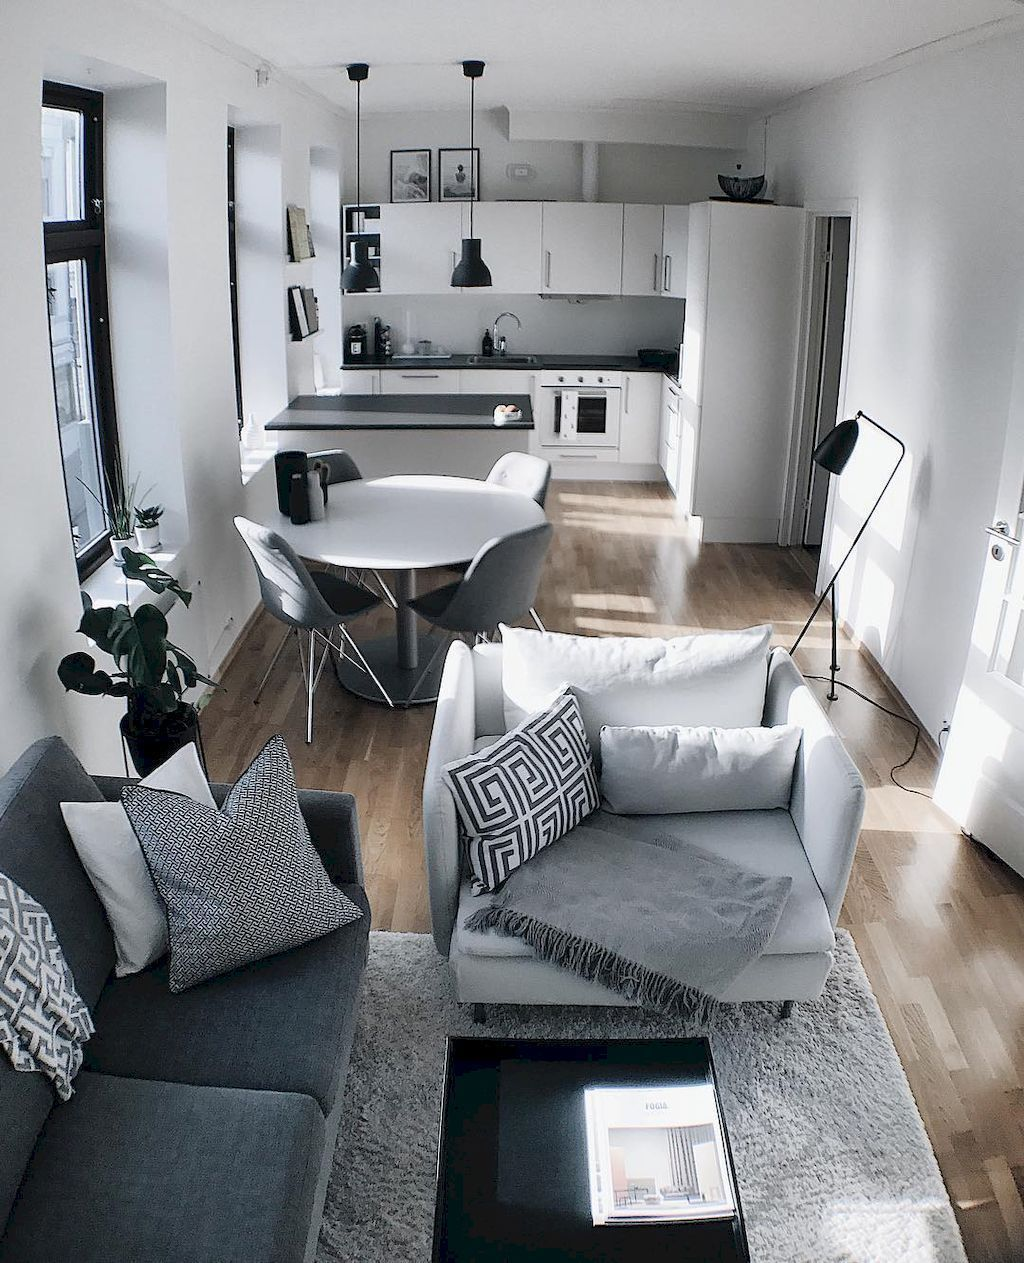 30 Awesome Apartment Decorating Ideas On A Budget Popy Home